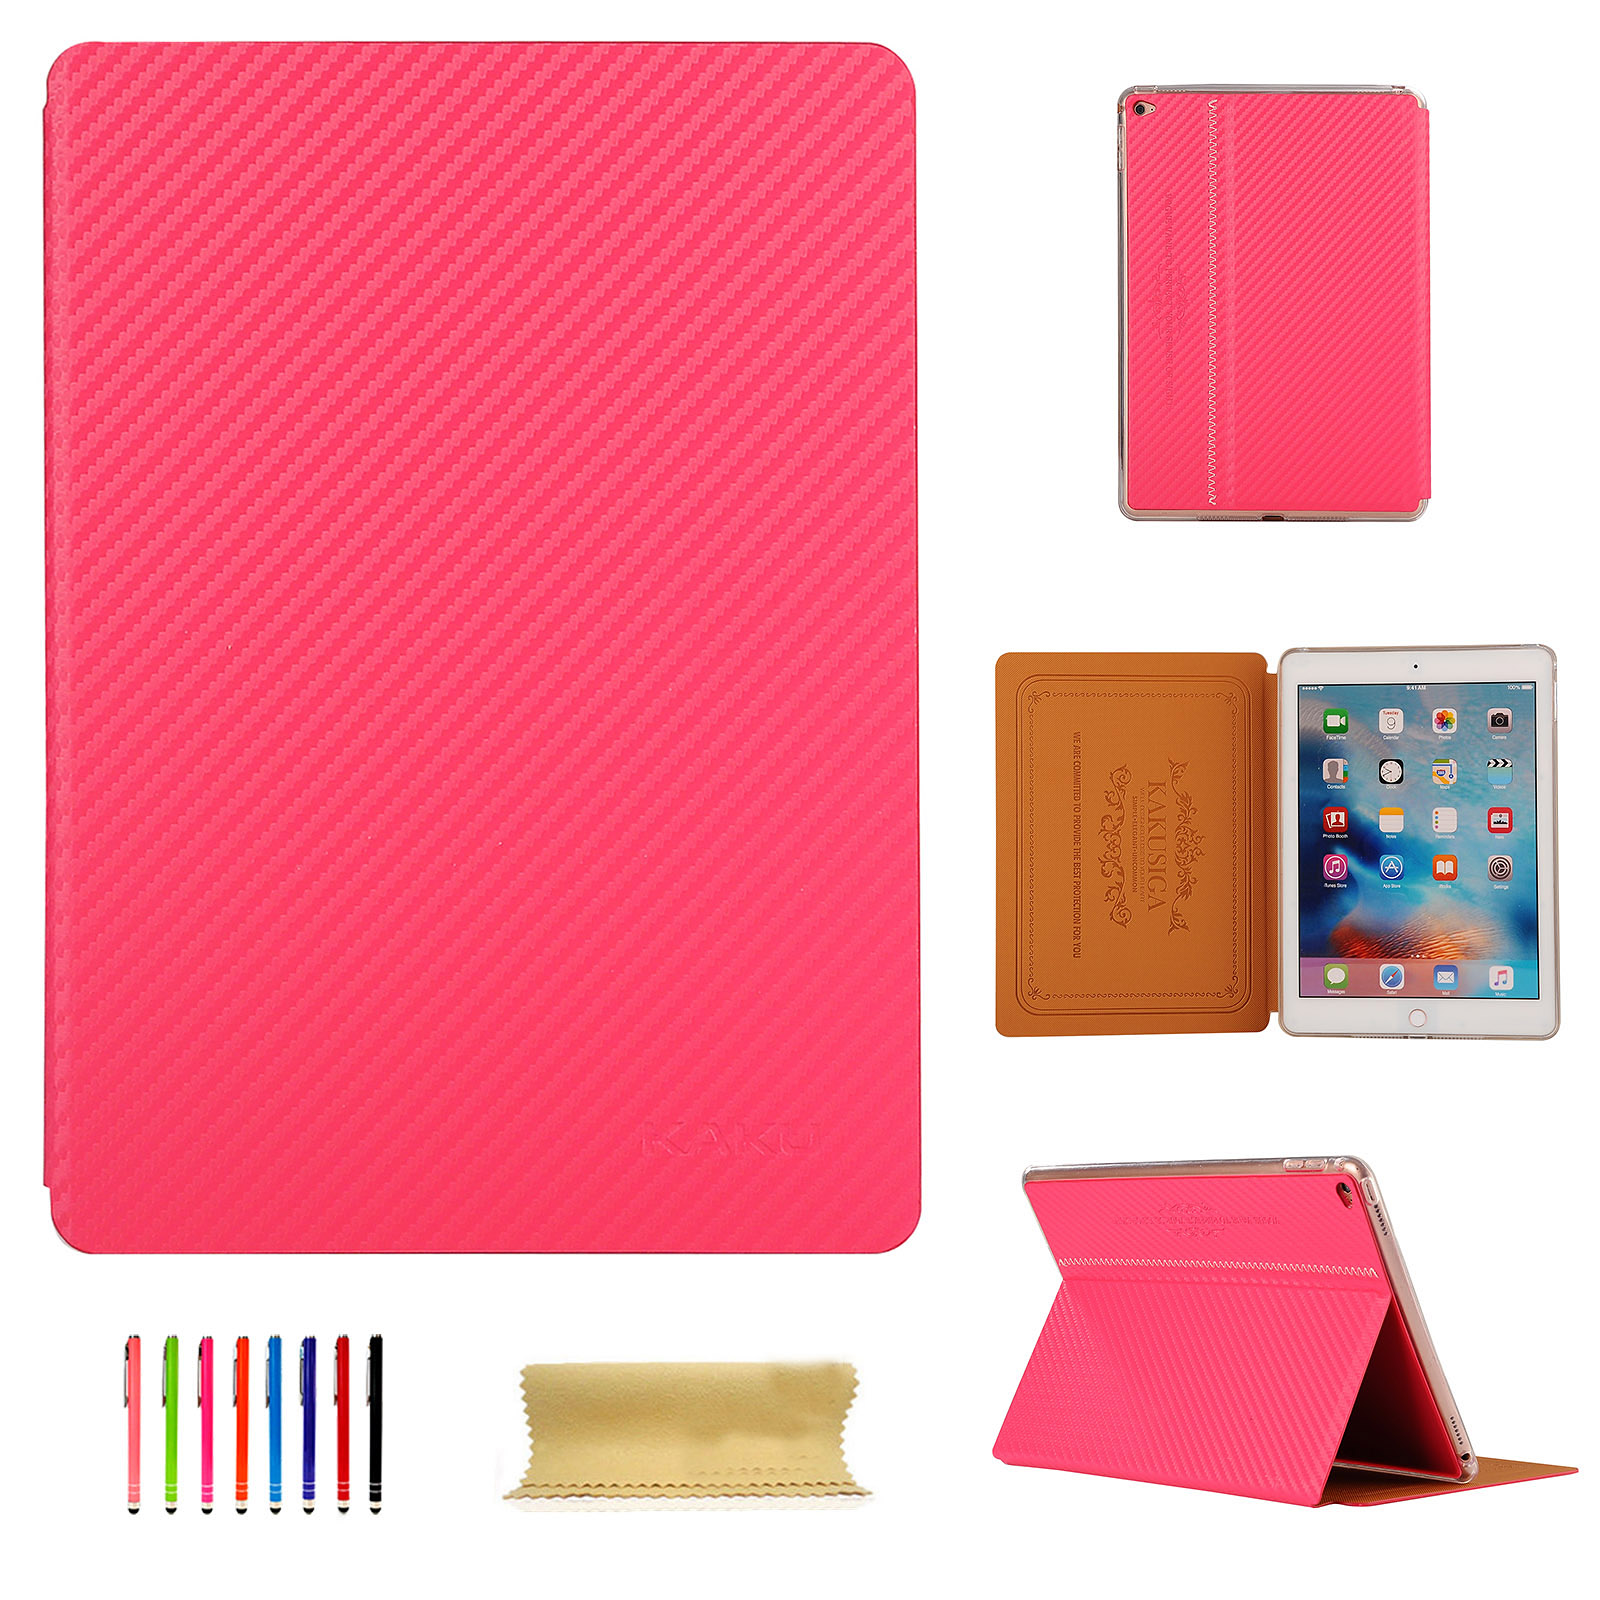 Carbon-Fiber-Ultra-Thin-Magnetic-Smart-Case-Cover-For-iPad-2-Pro-9-7-039-039-Mini-Air